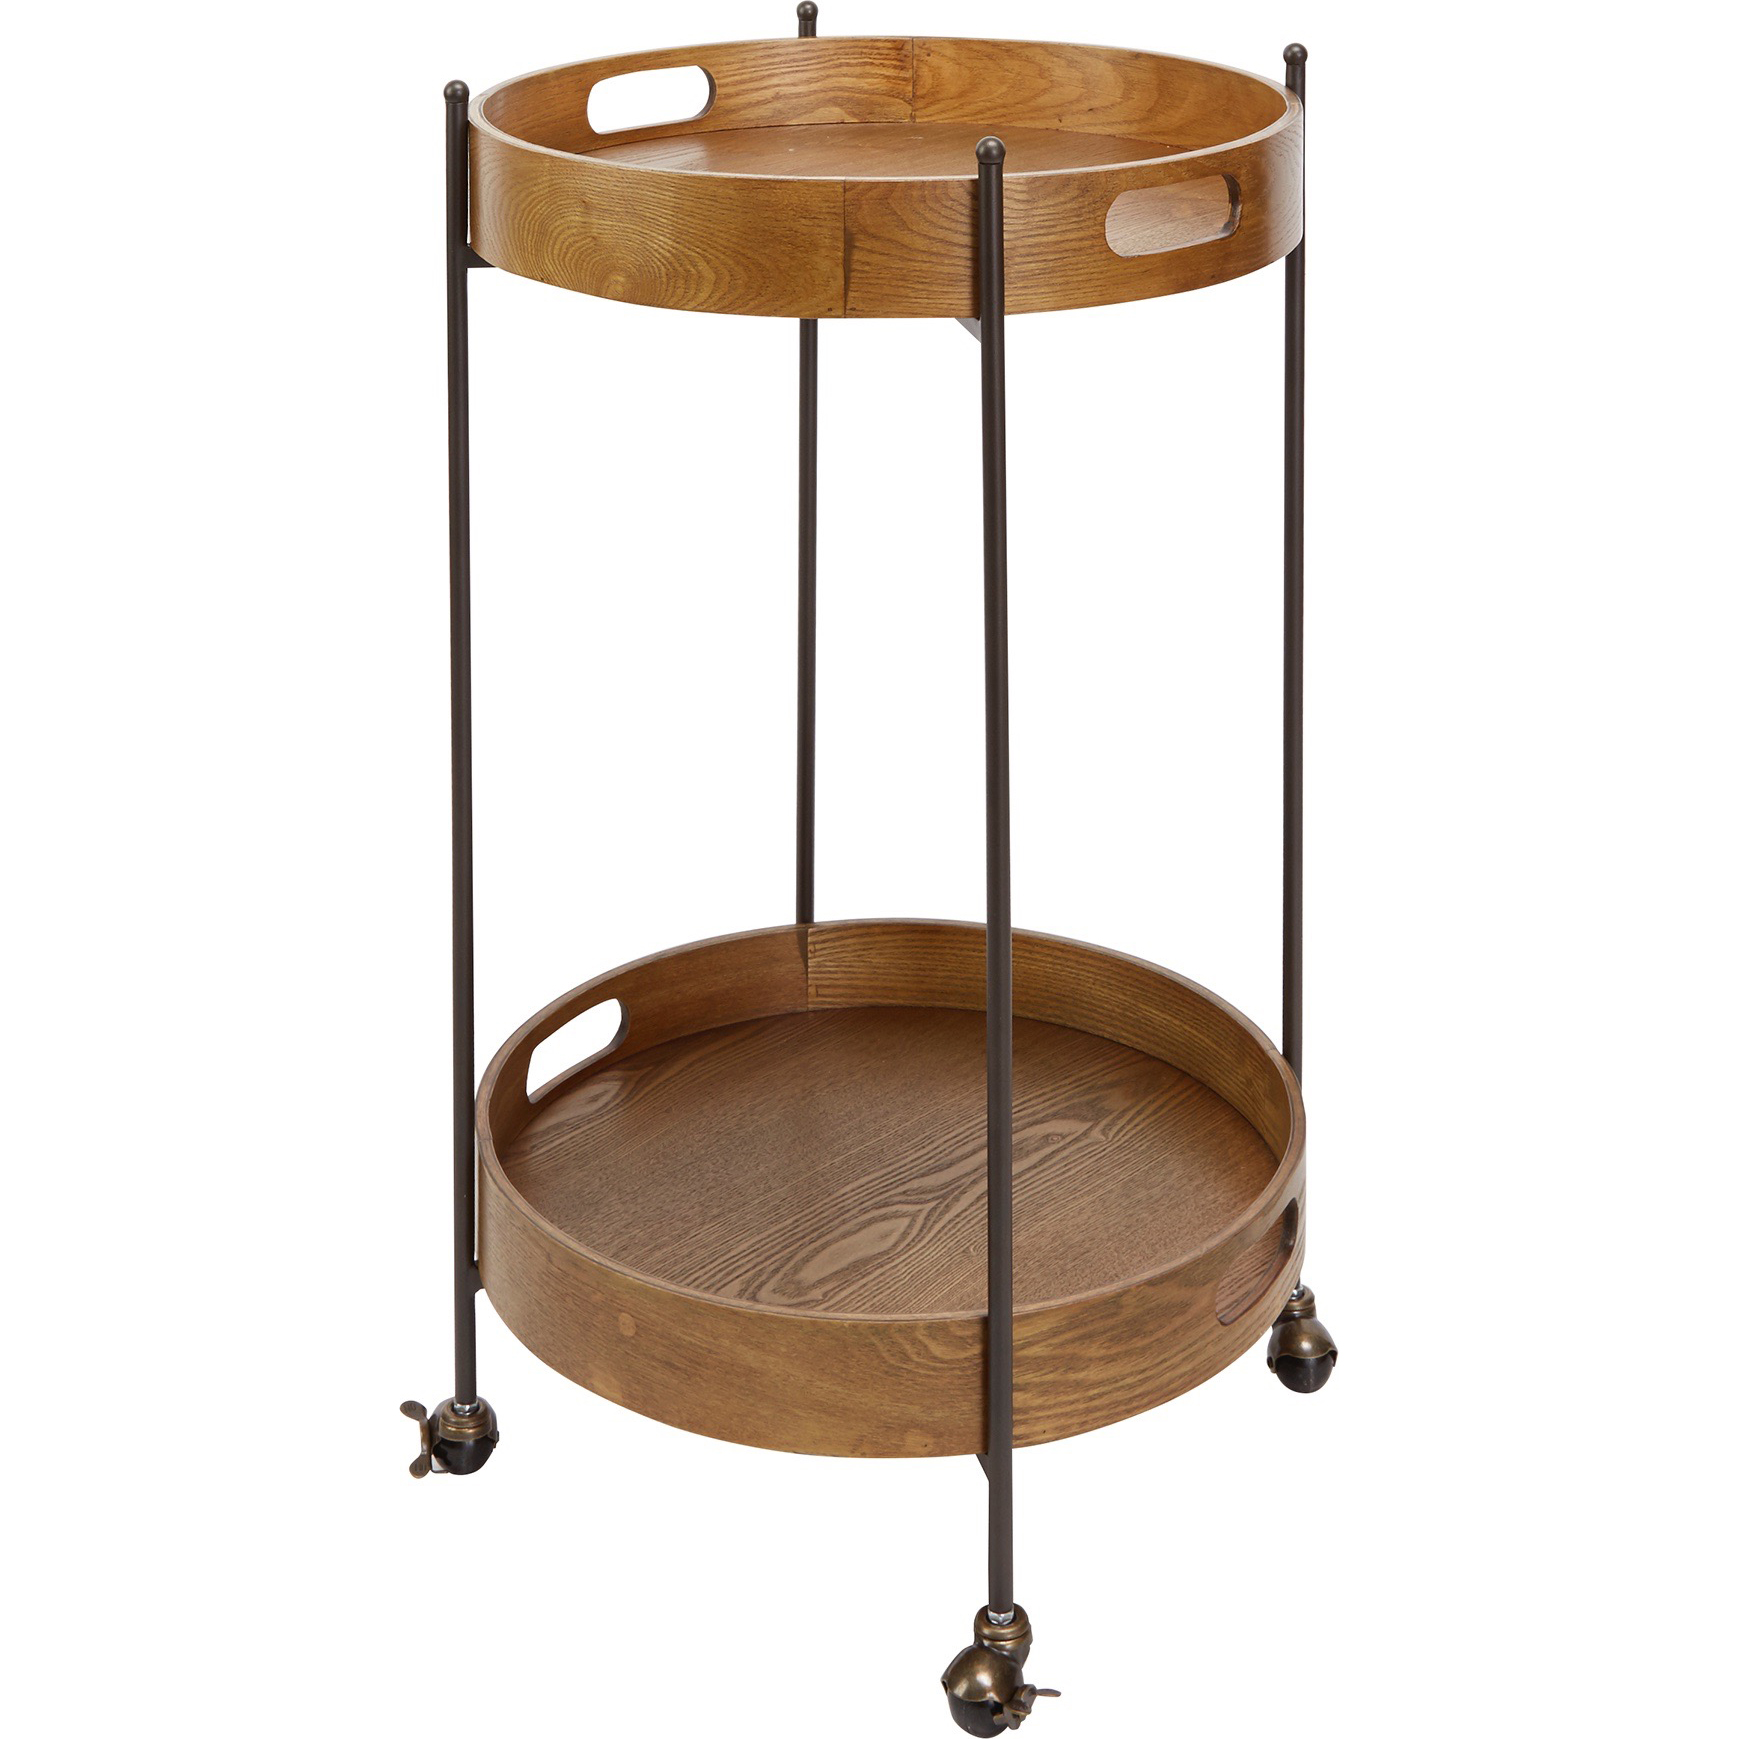 Better Homes & Gardens Mason Wood & Metal Round Bar Cart with Removable Tray